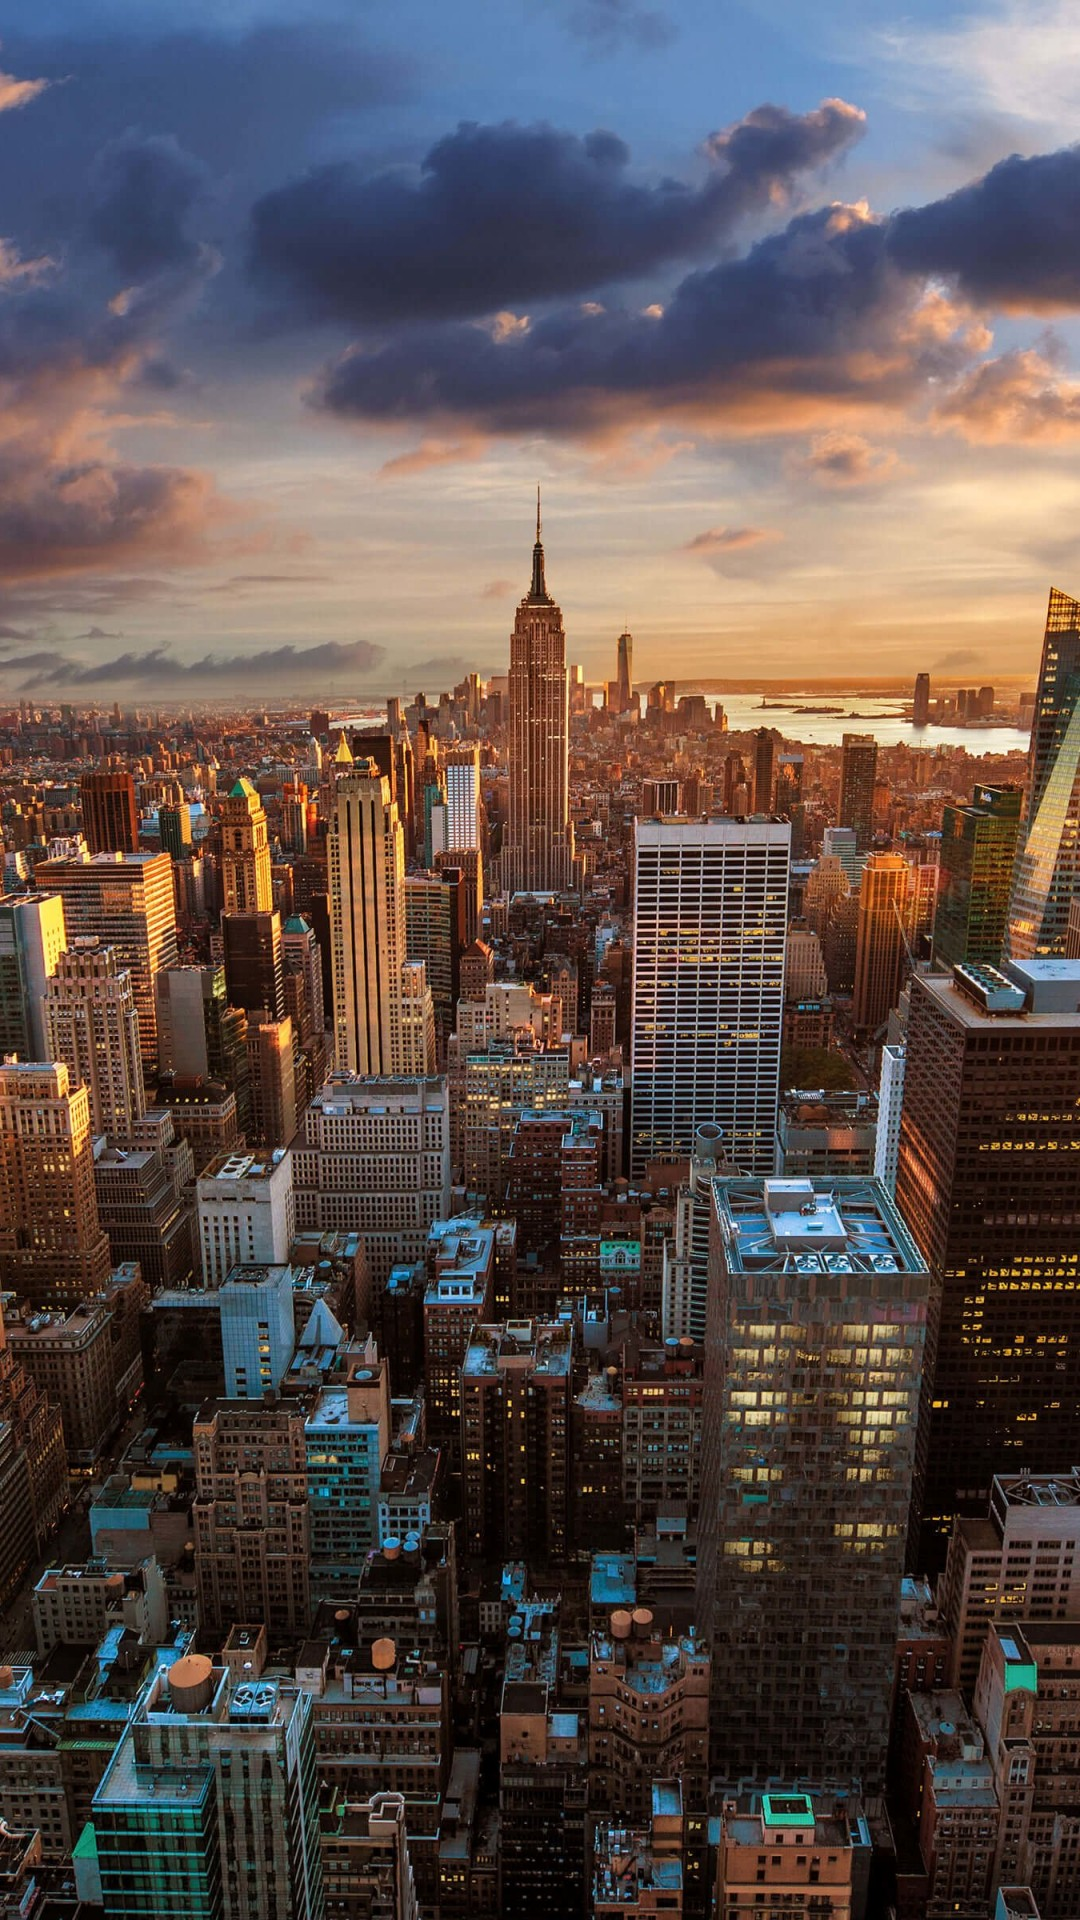 New York City Skyline At Sunset Wallpaper for SAMSUNG Galaxy Note 3